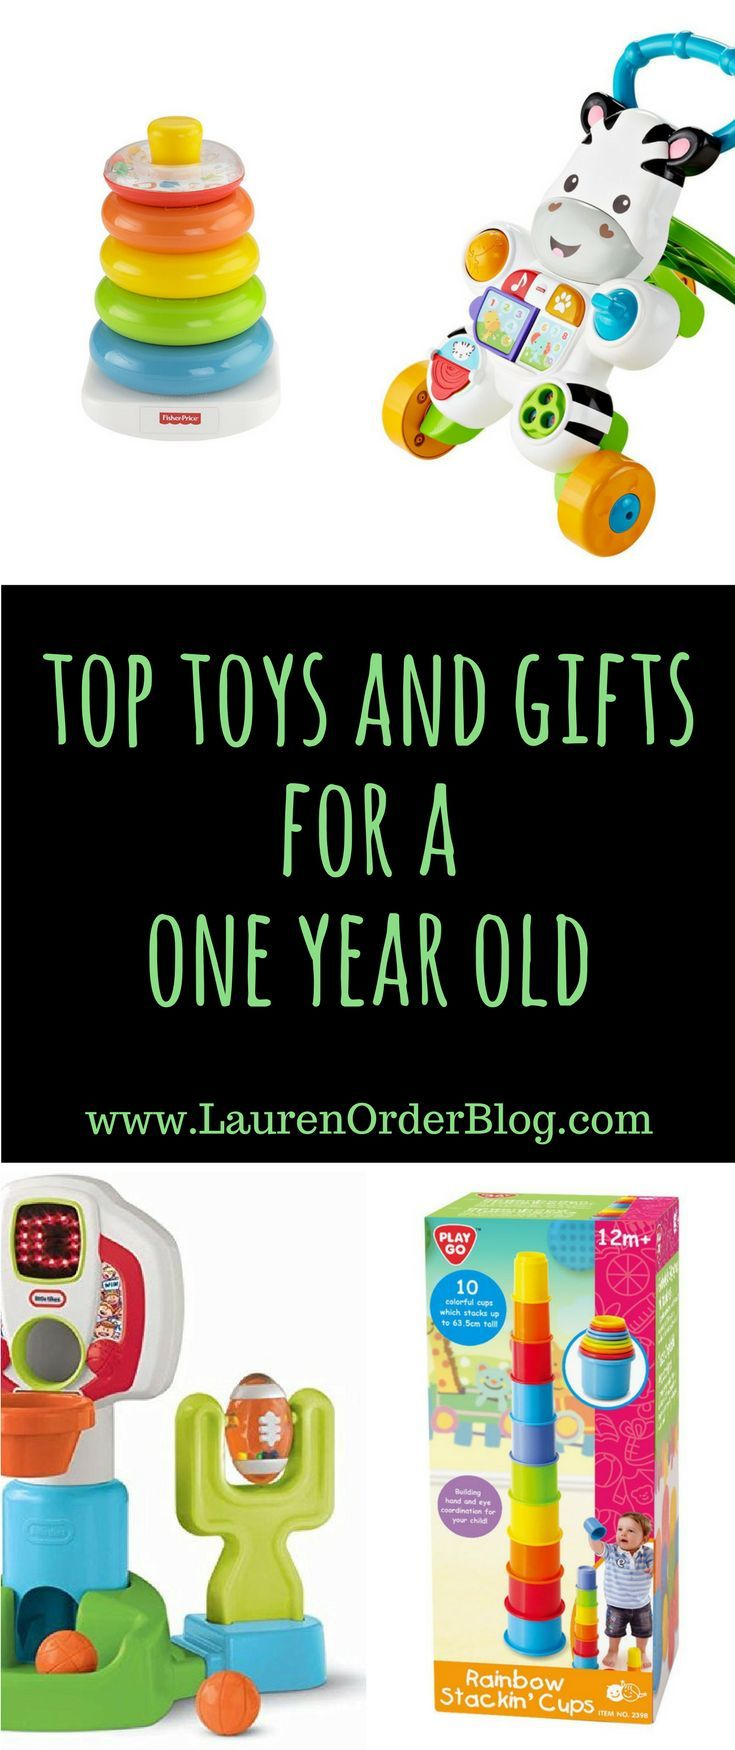 Toys images for boys  Top toys for your  month old  Toy Baby learning and Babies